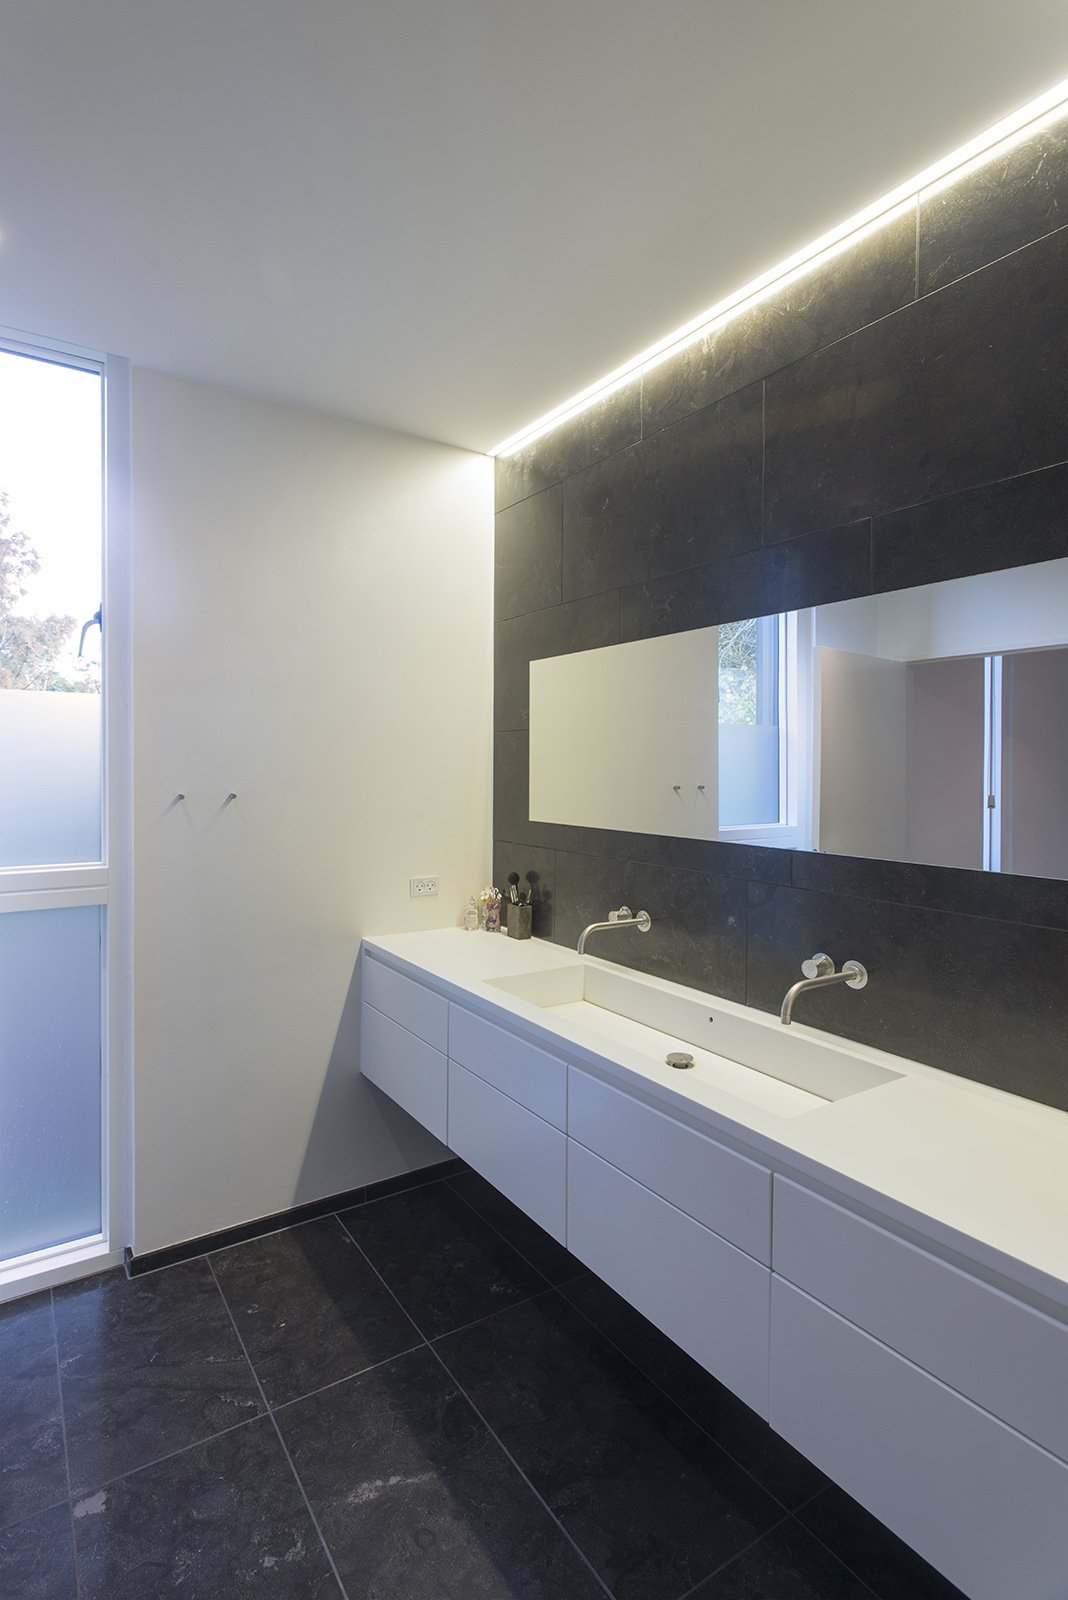 Vola fixtures are used in the bathroom.